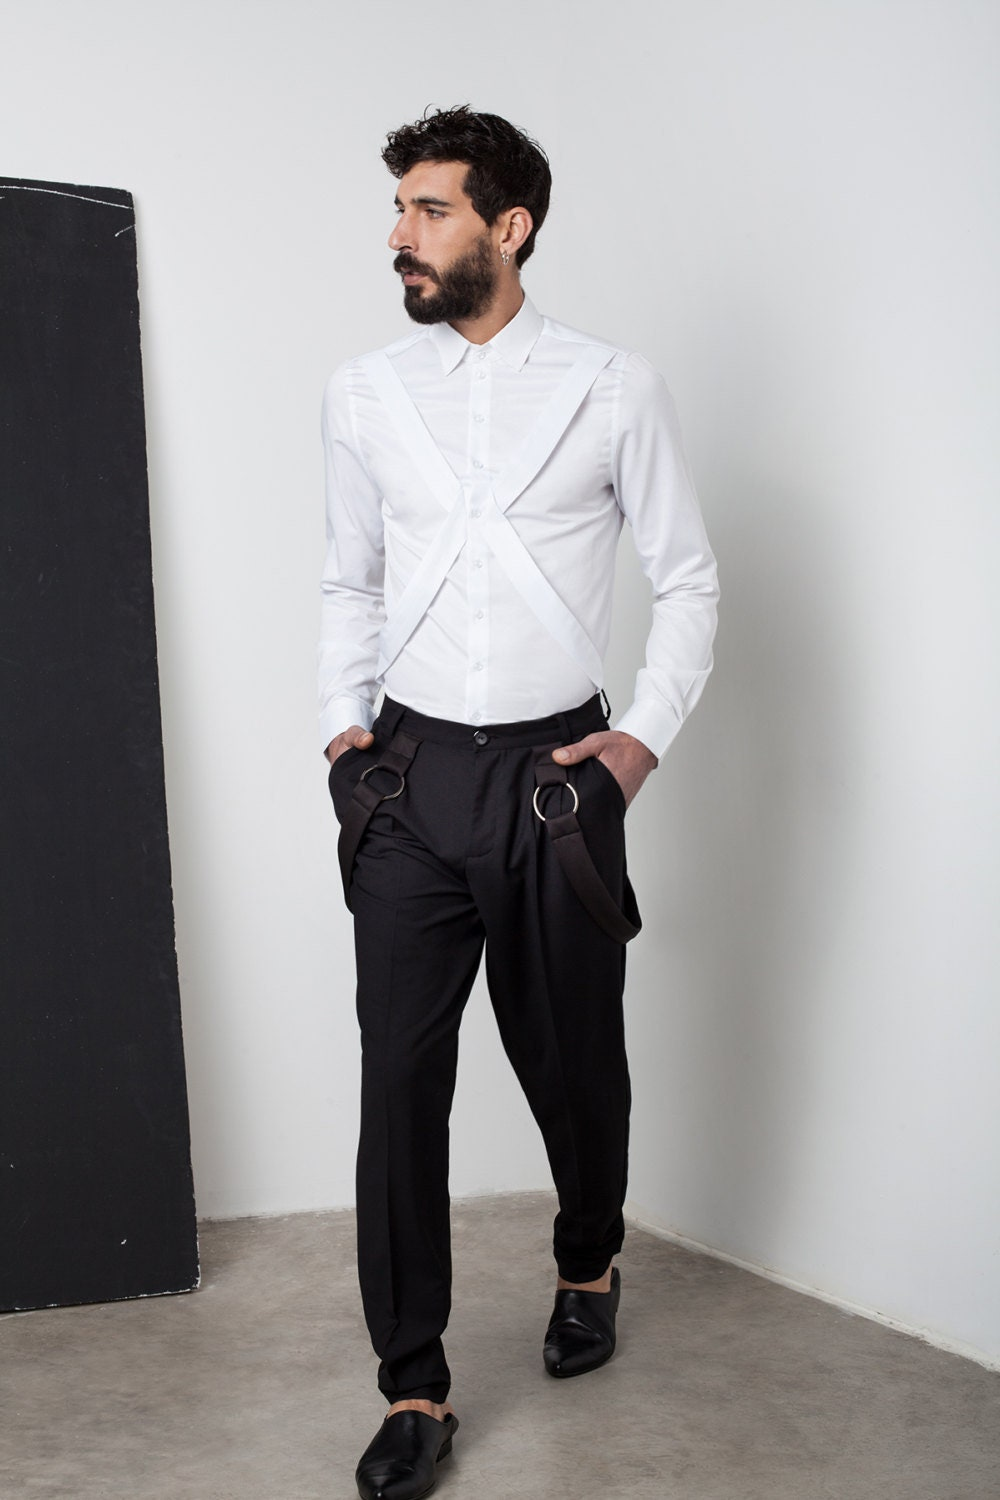 Mens White Shirt Mens Dress Shirt Harness Shirt Mens Shirt Etsy